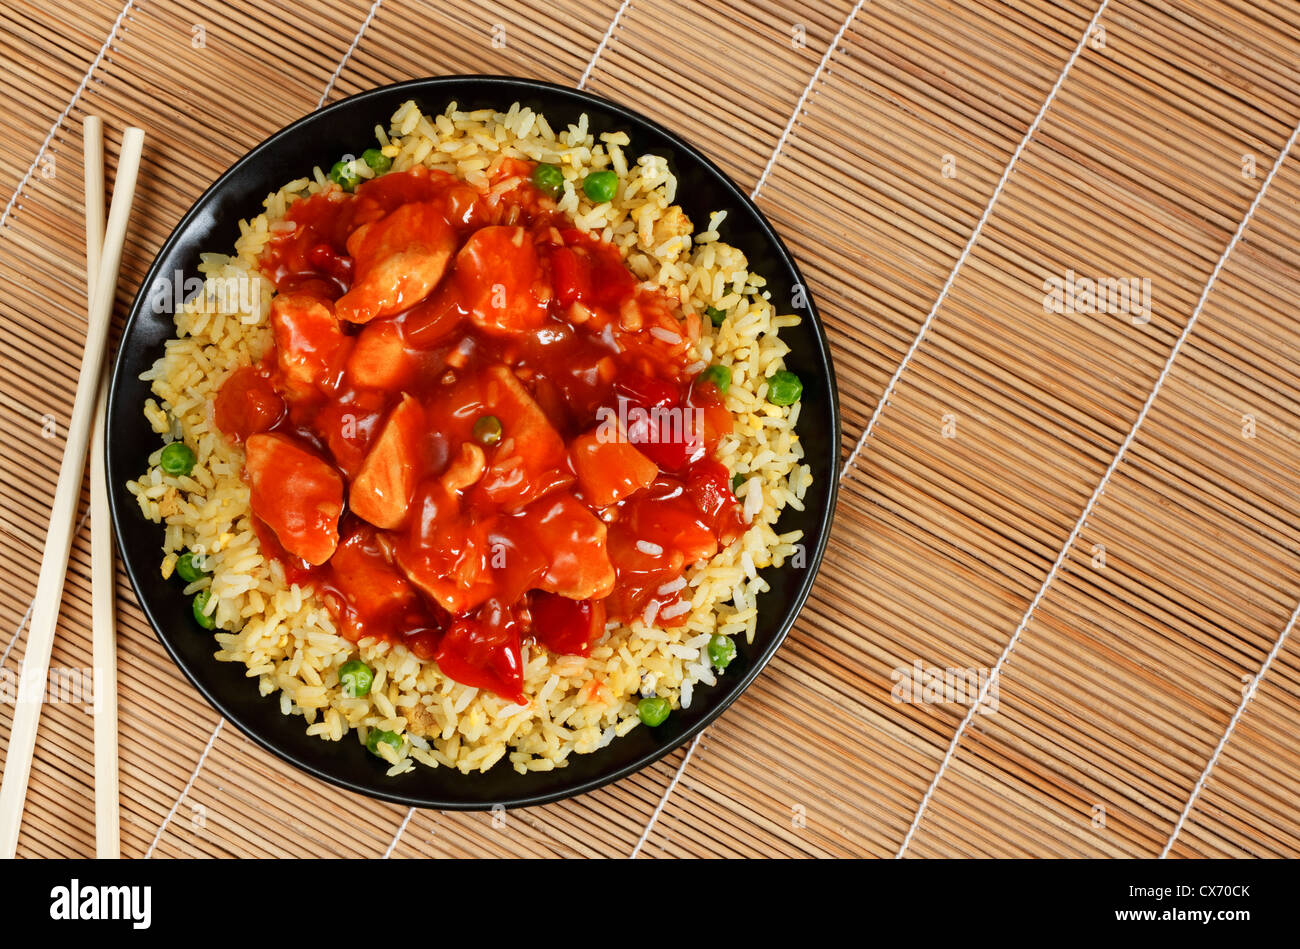 sweet and sour chicken with fried rice - popular oriental cuisine - Stock Image